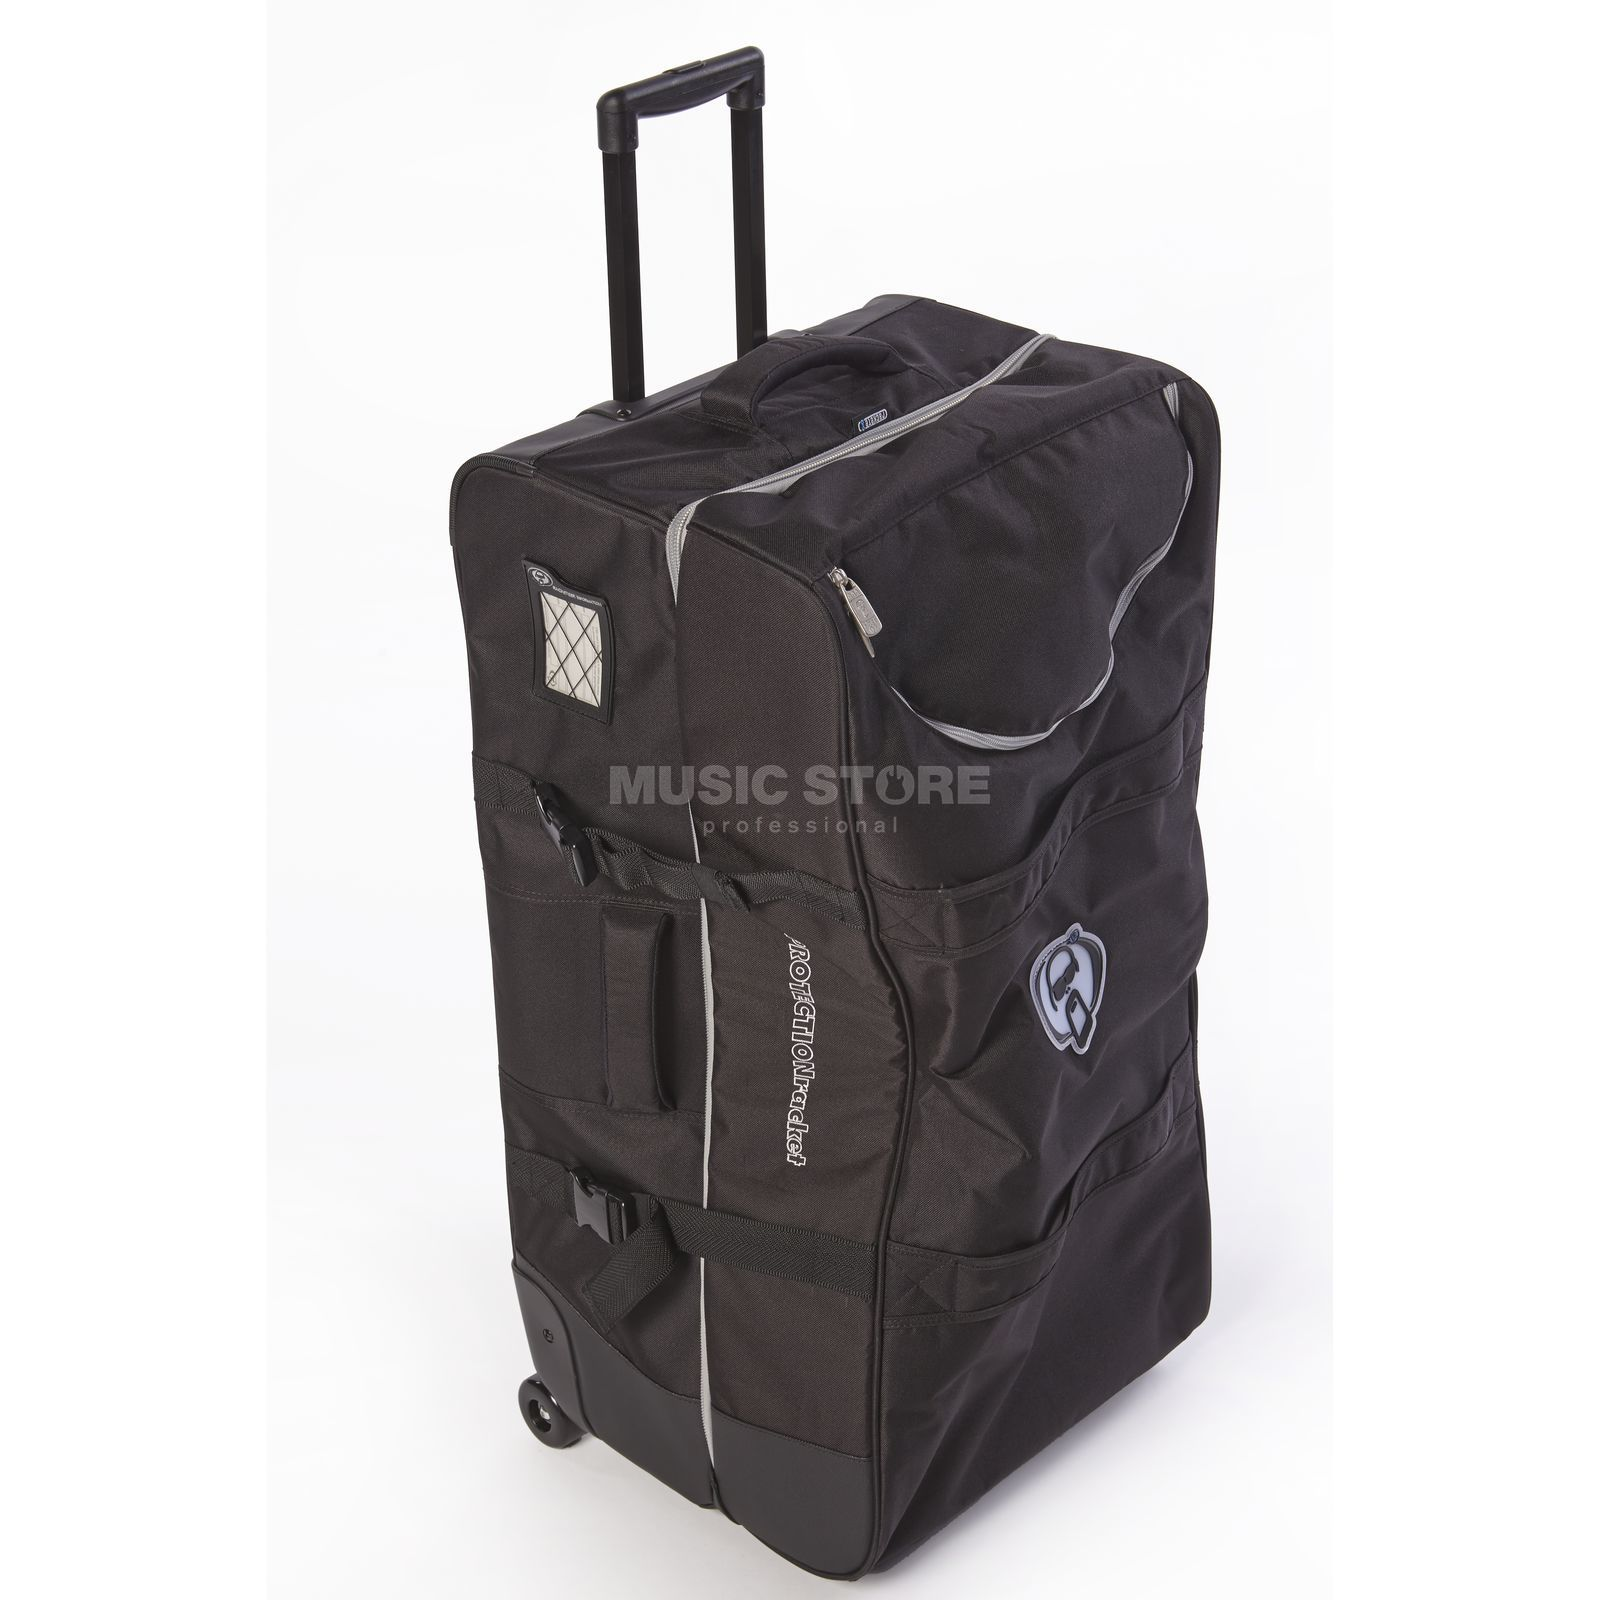 Protection Racket Reistetasche / Suitcase 4277-46 Produktbild